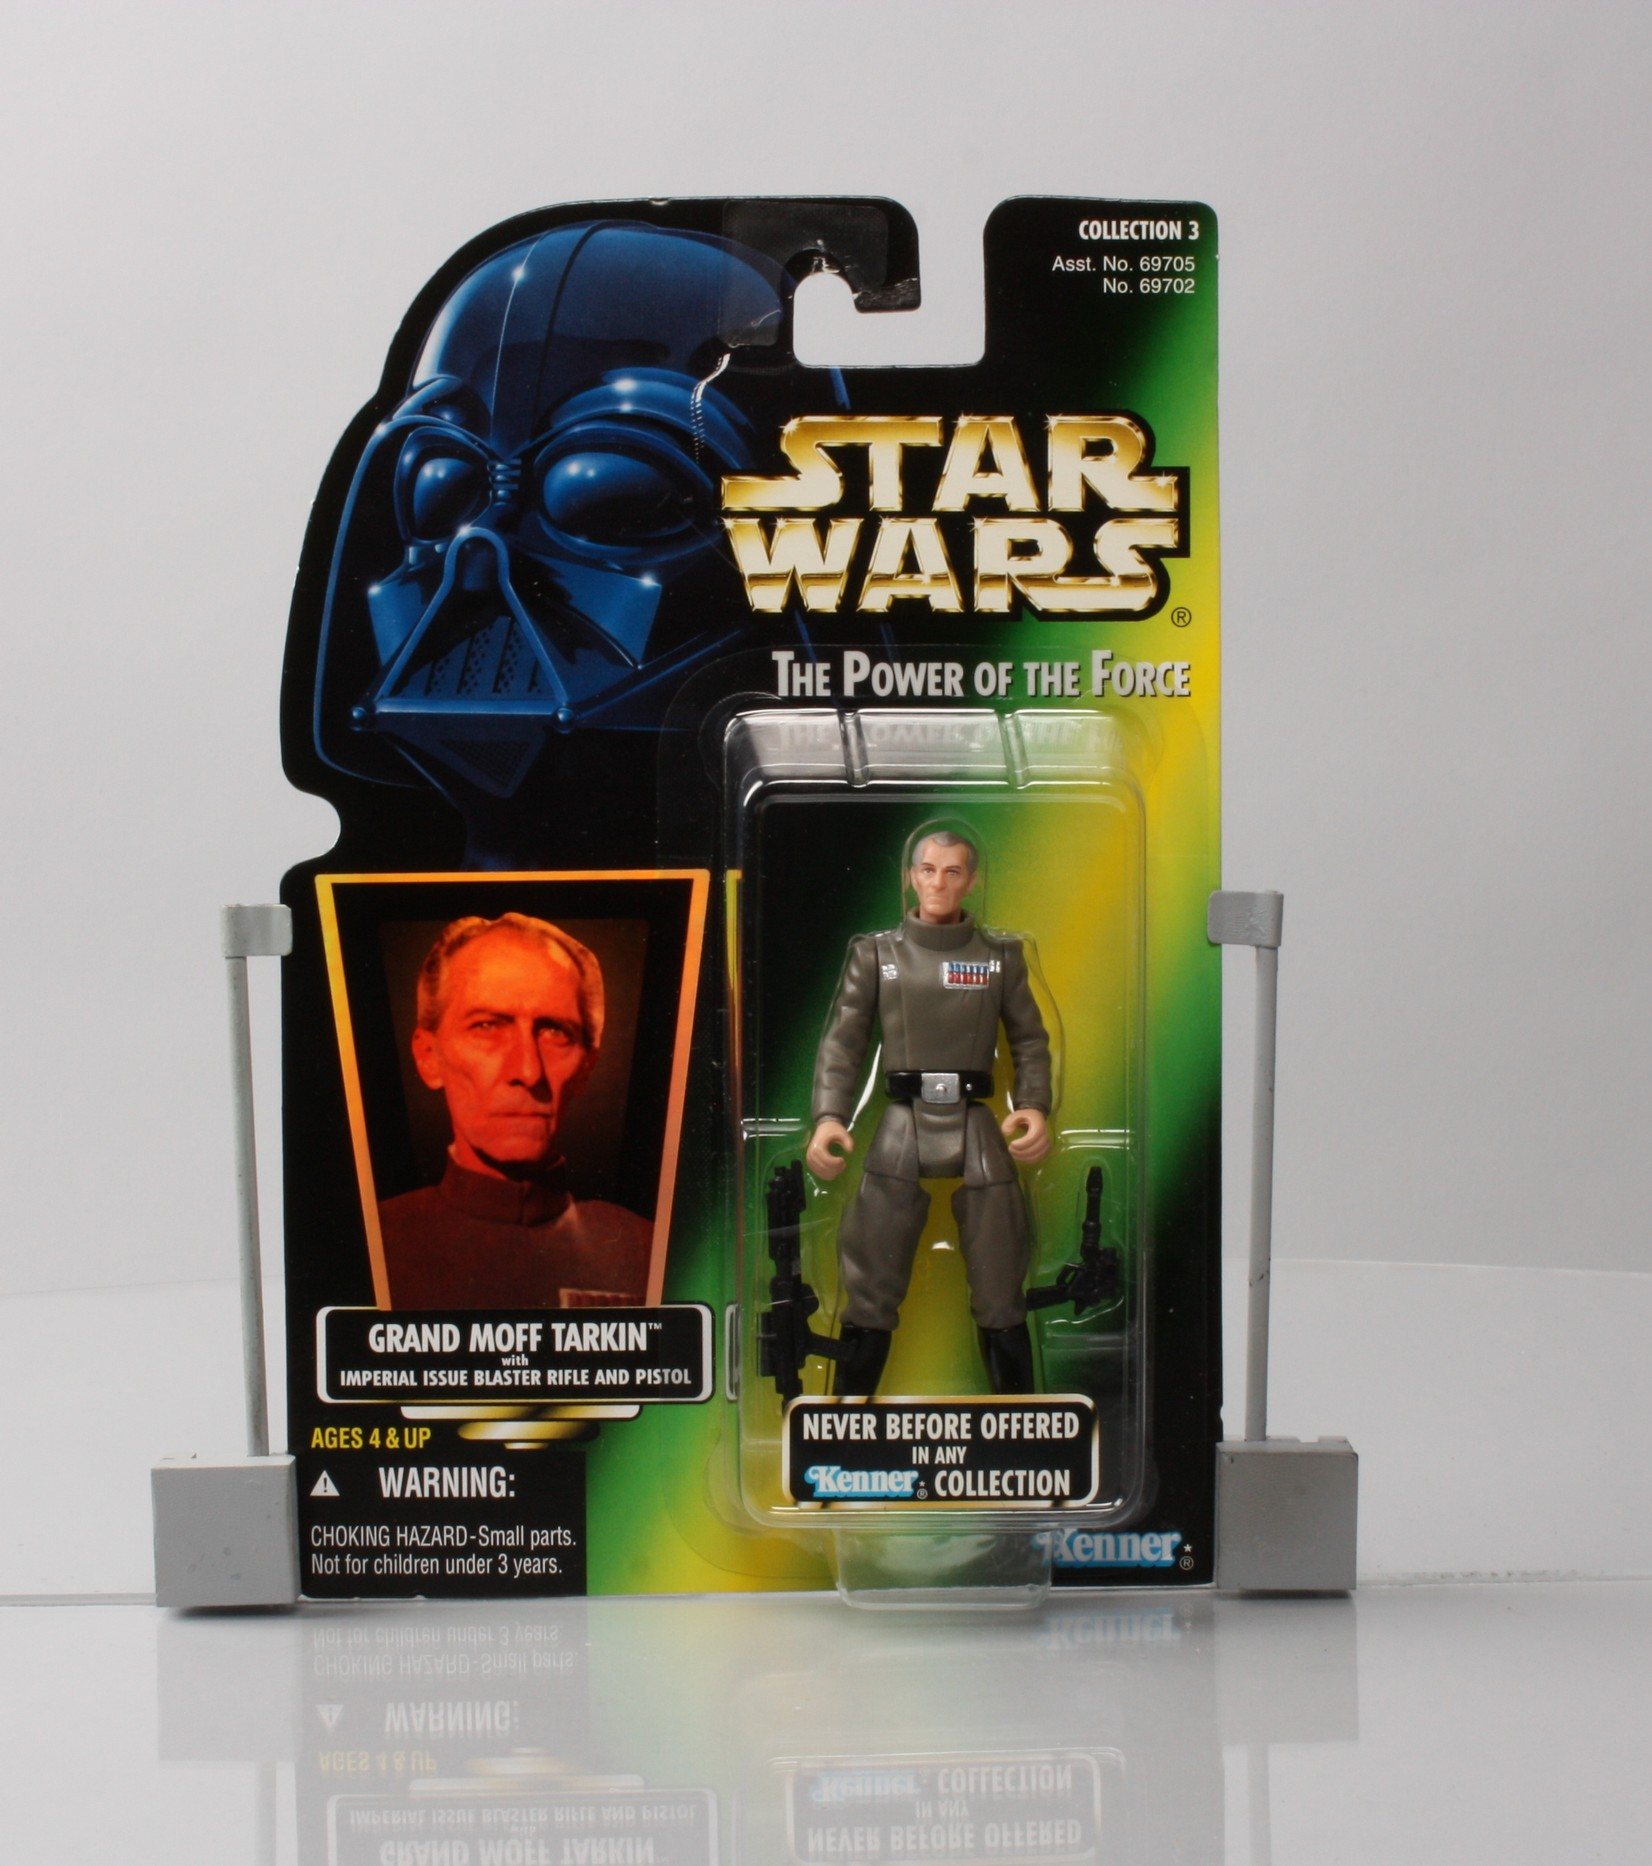 Grand Moff Tarkin with Imperial Issue Blaster Rifle and Pistol